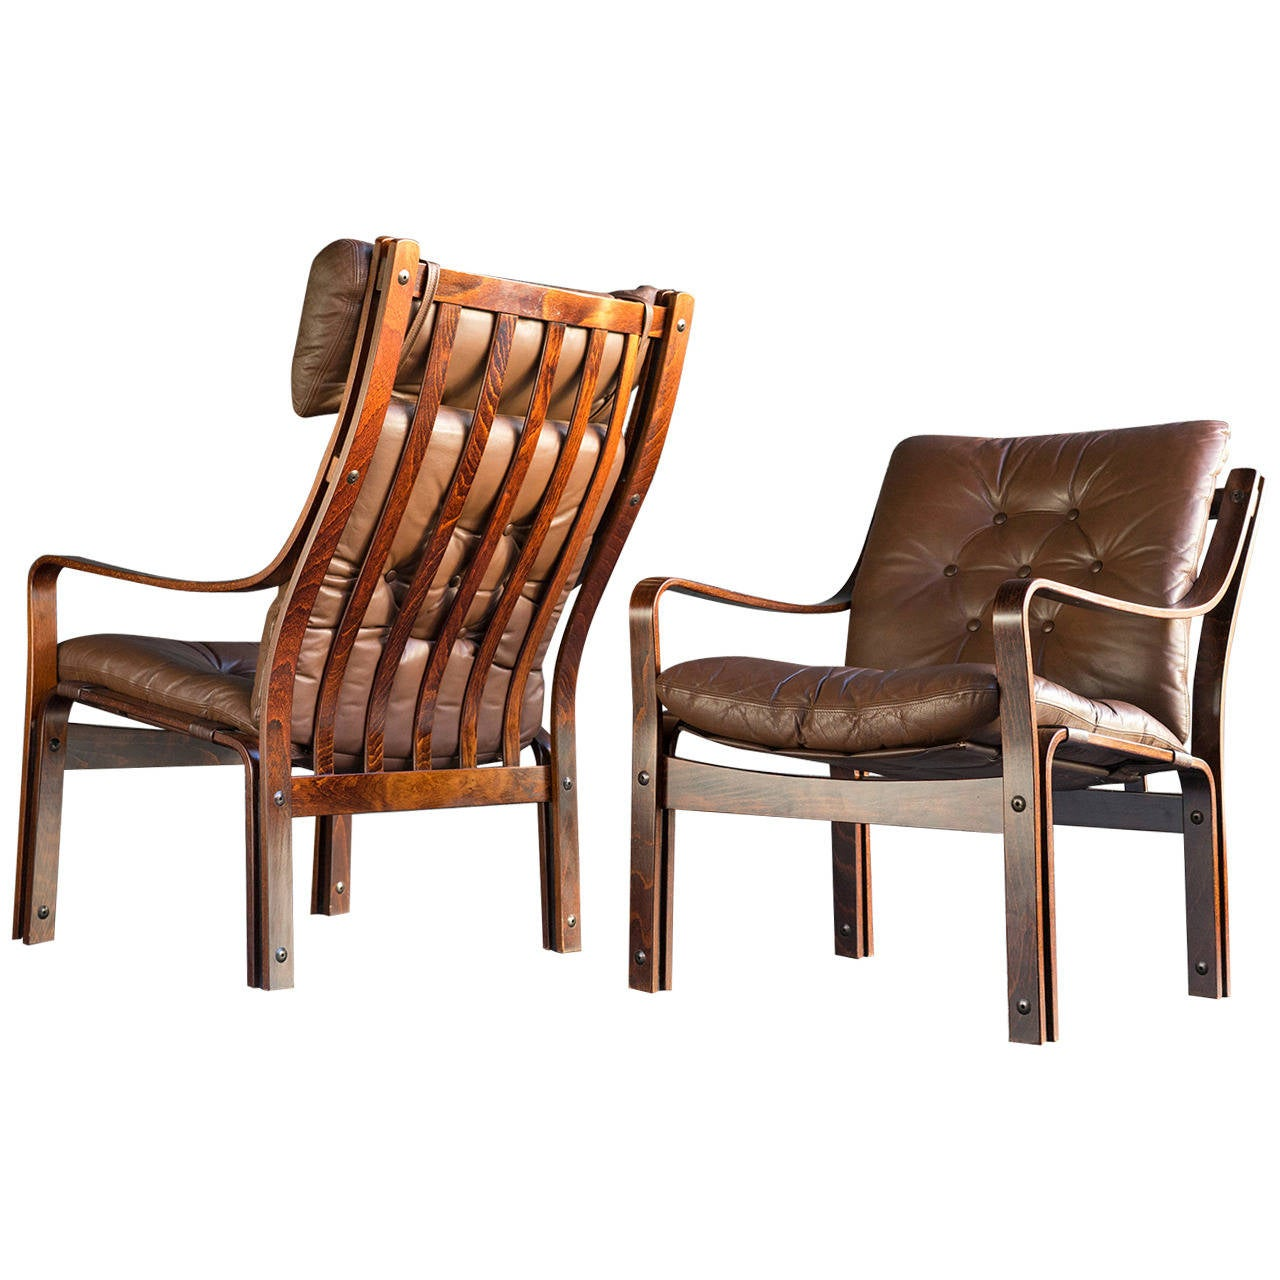 Modern Club Chairs Scandinavian Modern Leather Lounge Chairs At 1stdibs